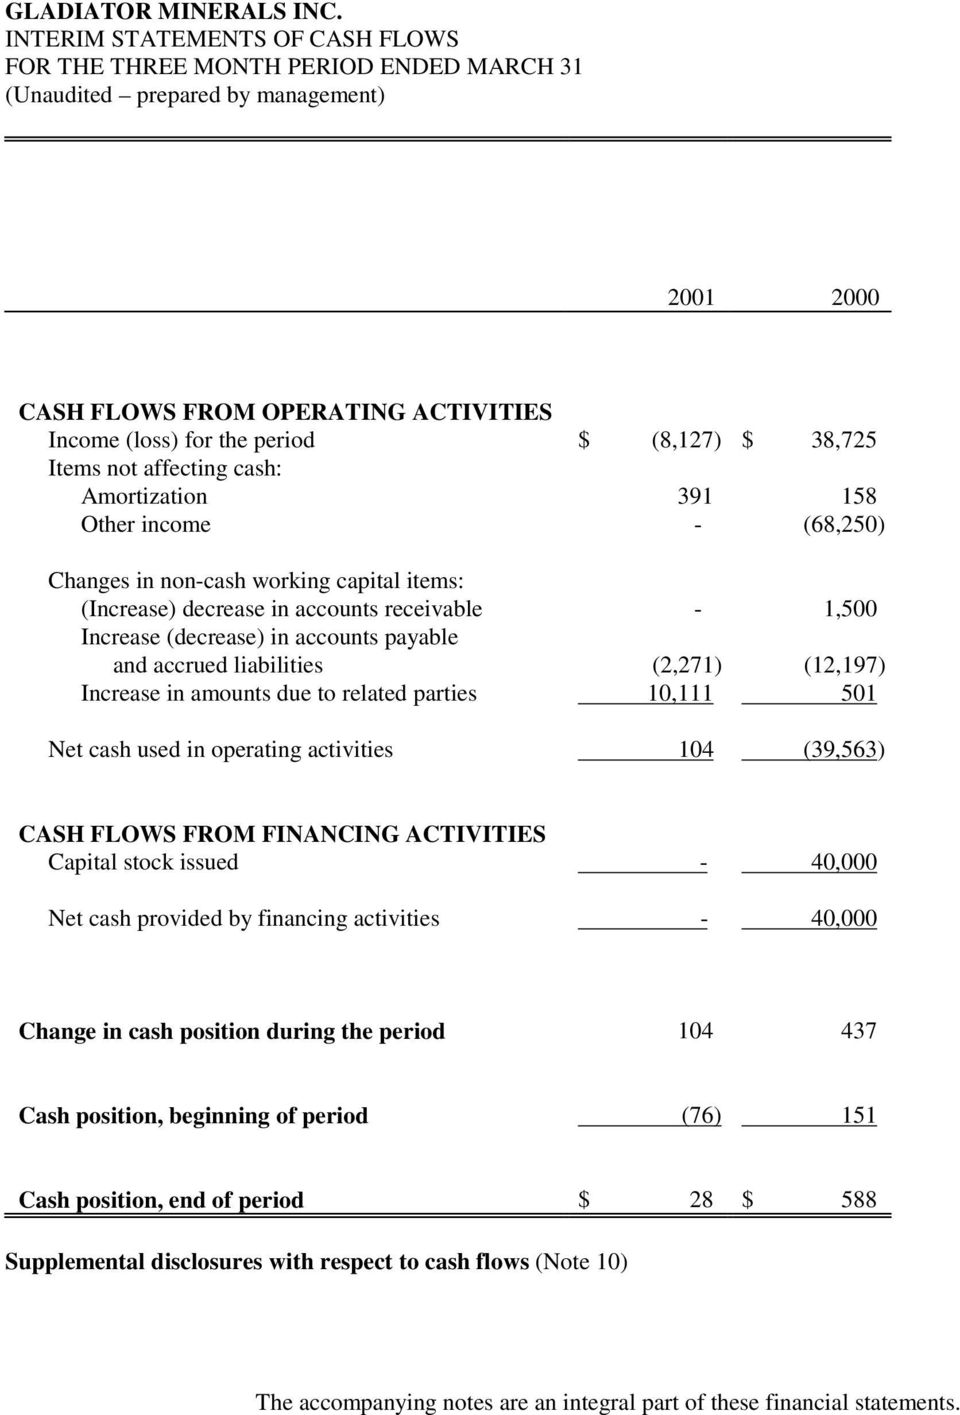 liabilities (2,271) (12,197) Increase in amounts due to related parties 10,111 501 Net cash used in operating activities 104 (39,563) CASH FLOWS FROM FINANCING ACTIVITIES Capital stock issued -